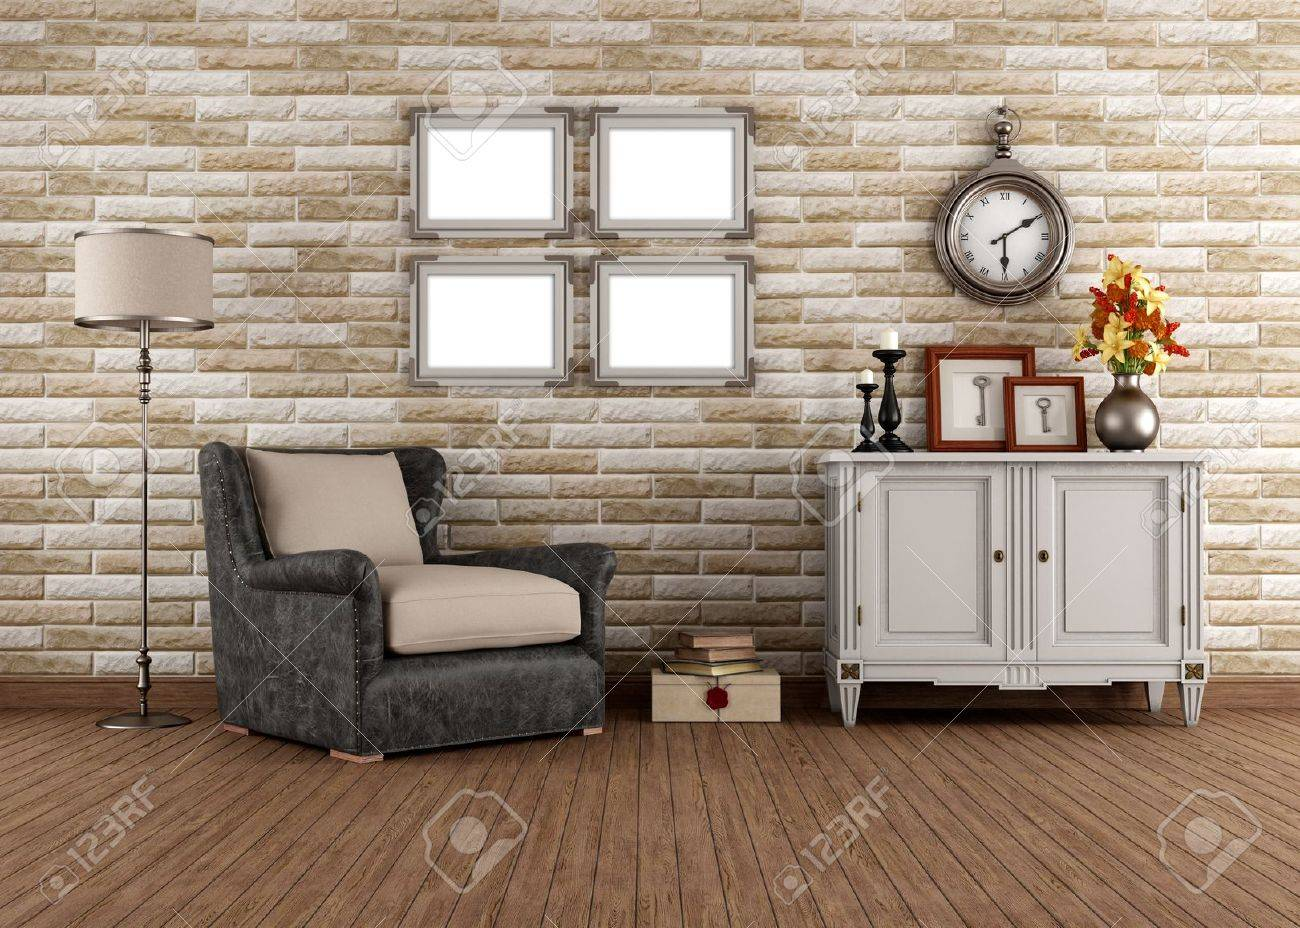 Vintage Living Room With Armchair And Dresser - Rendering Stock ...